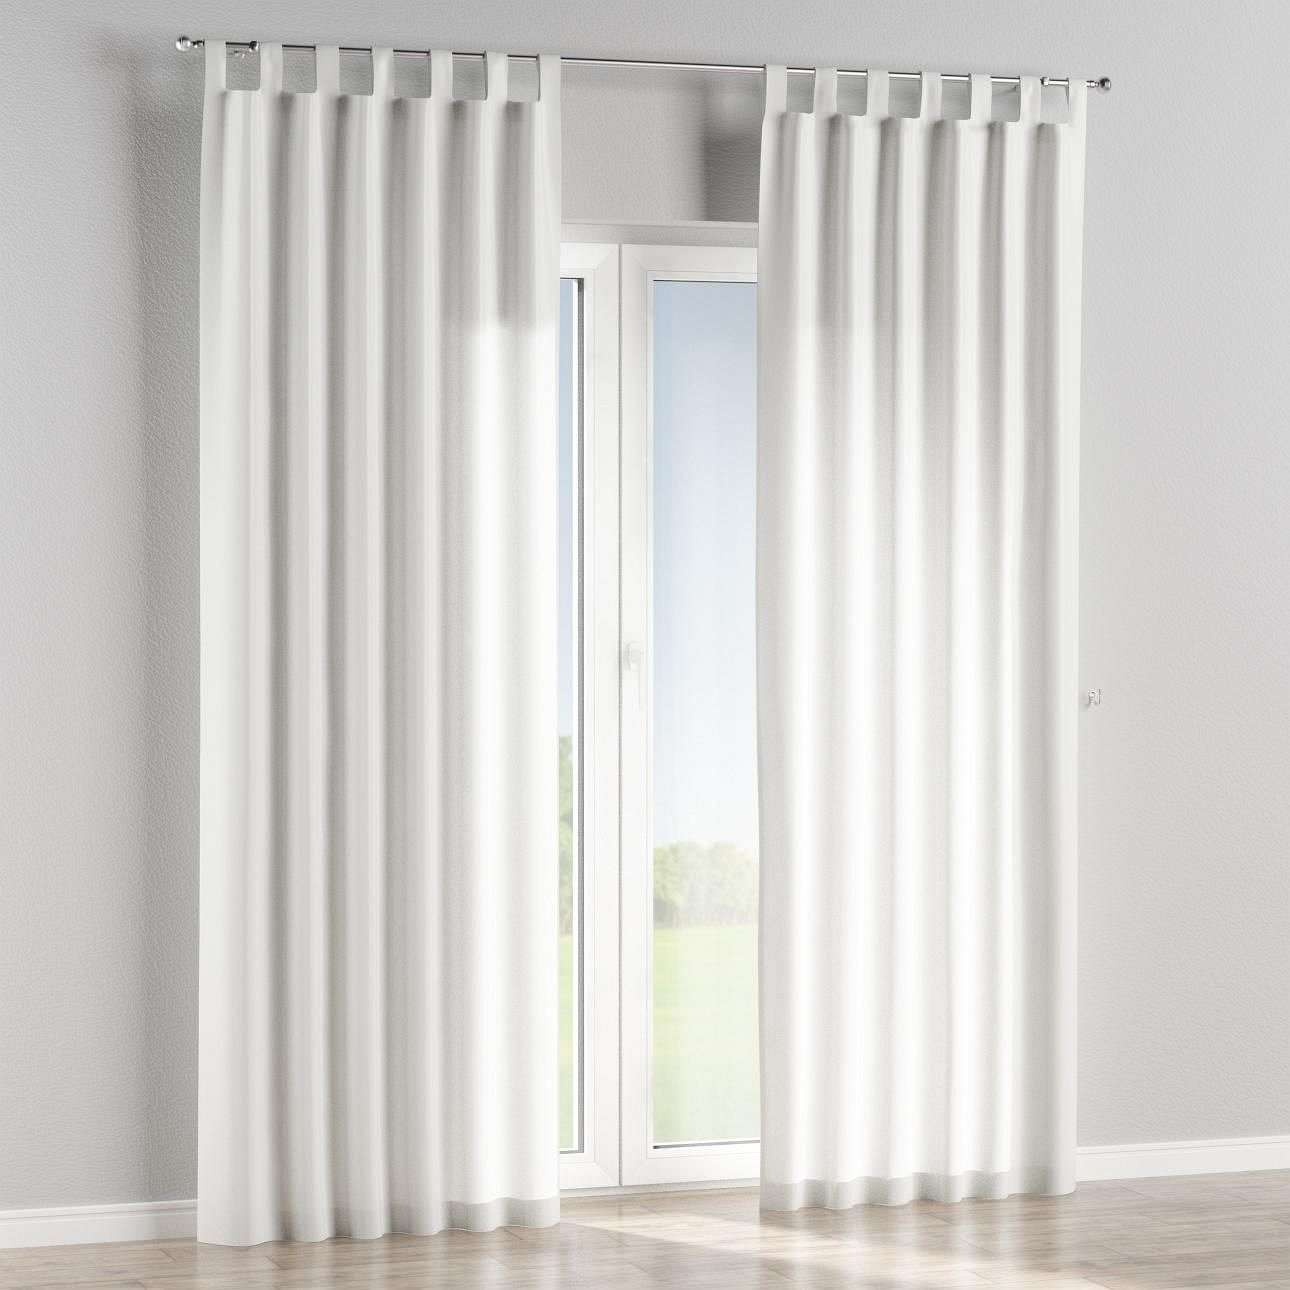 Tab top curtains in collection Rustica, fabric: 140-85